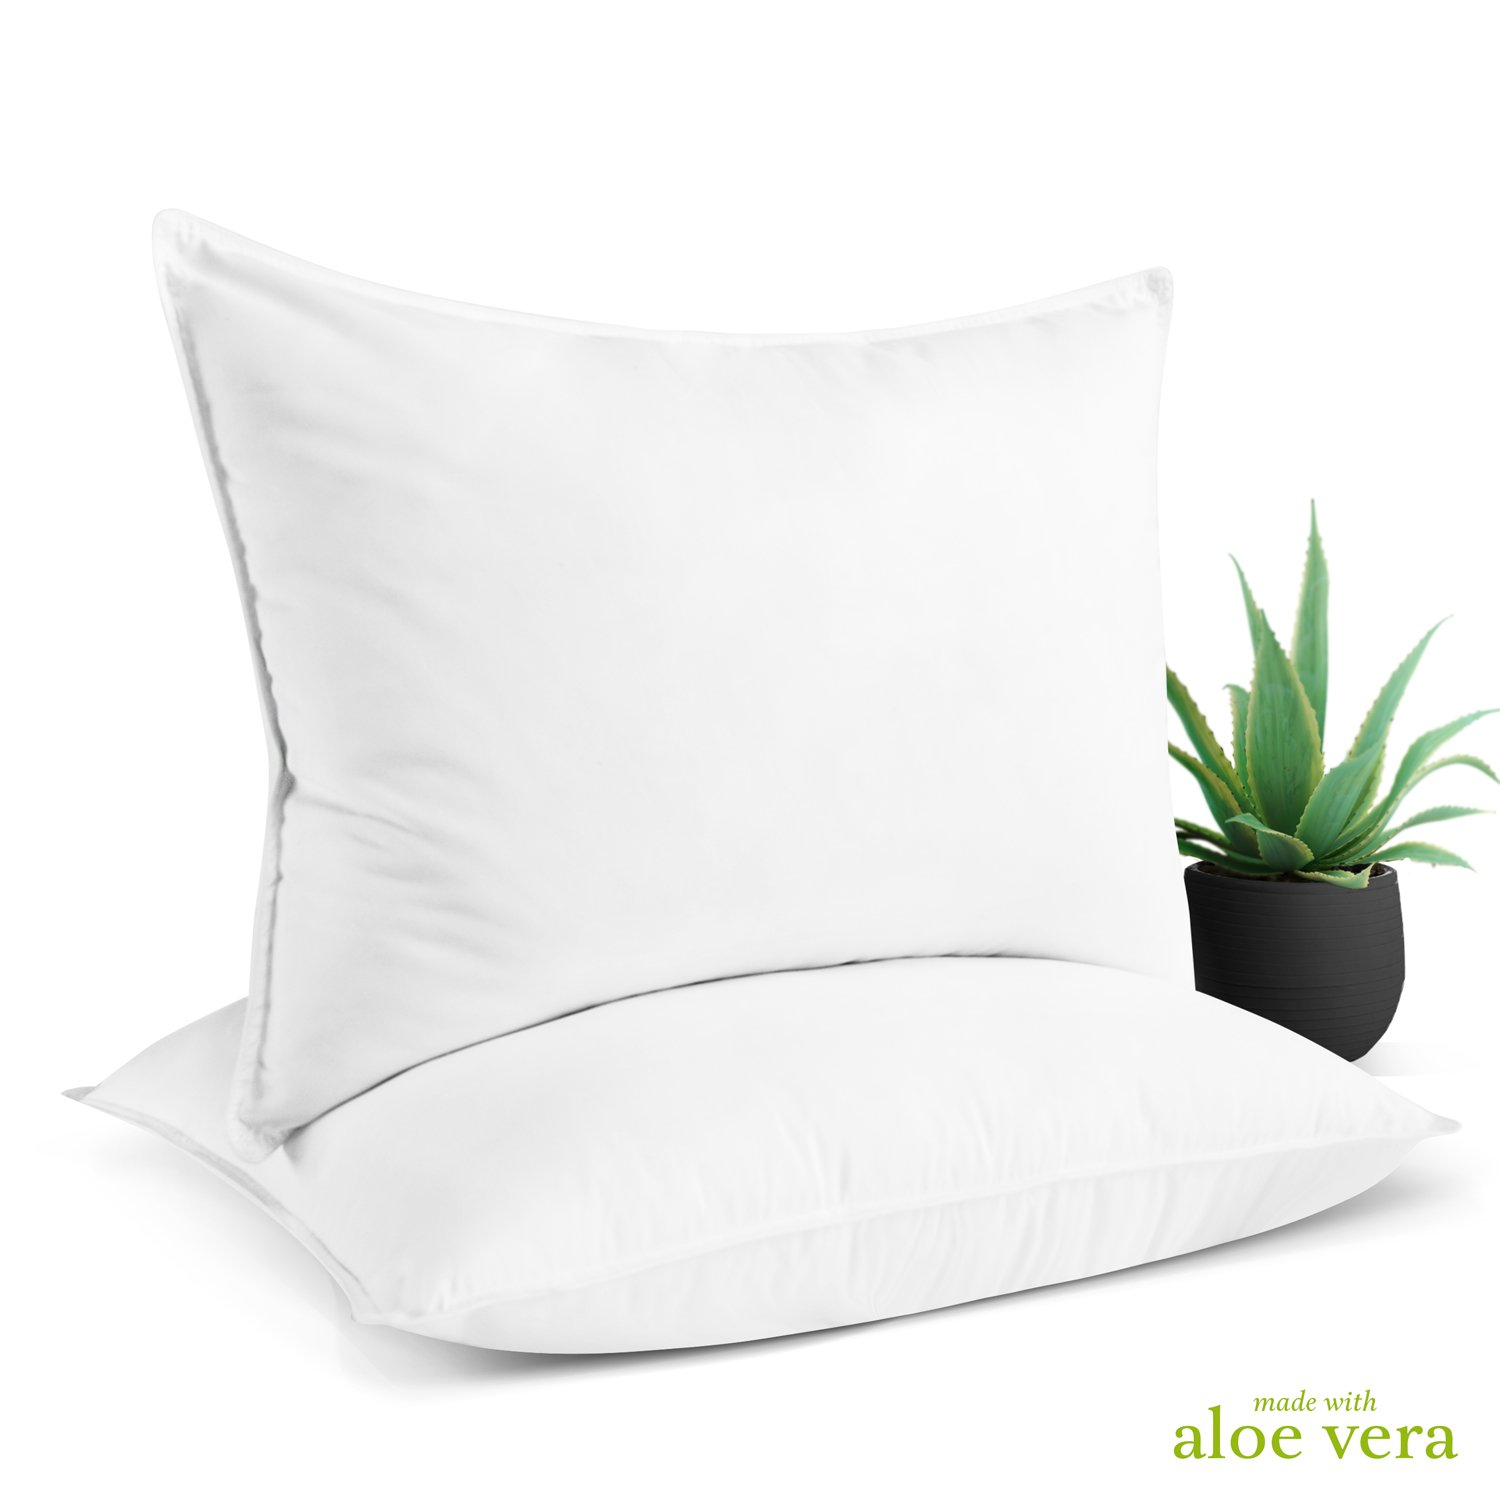 Aloe Vera Hotel Collection Gel Pillow (2 Pack) – Luxury Plush Pillows with All-Natural Pure Aloe Vera Treatment